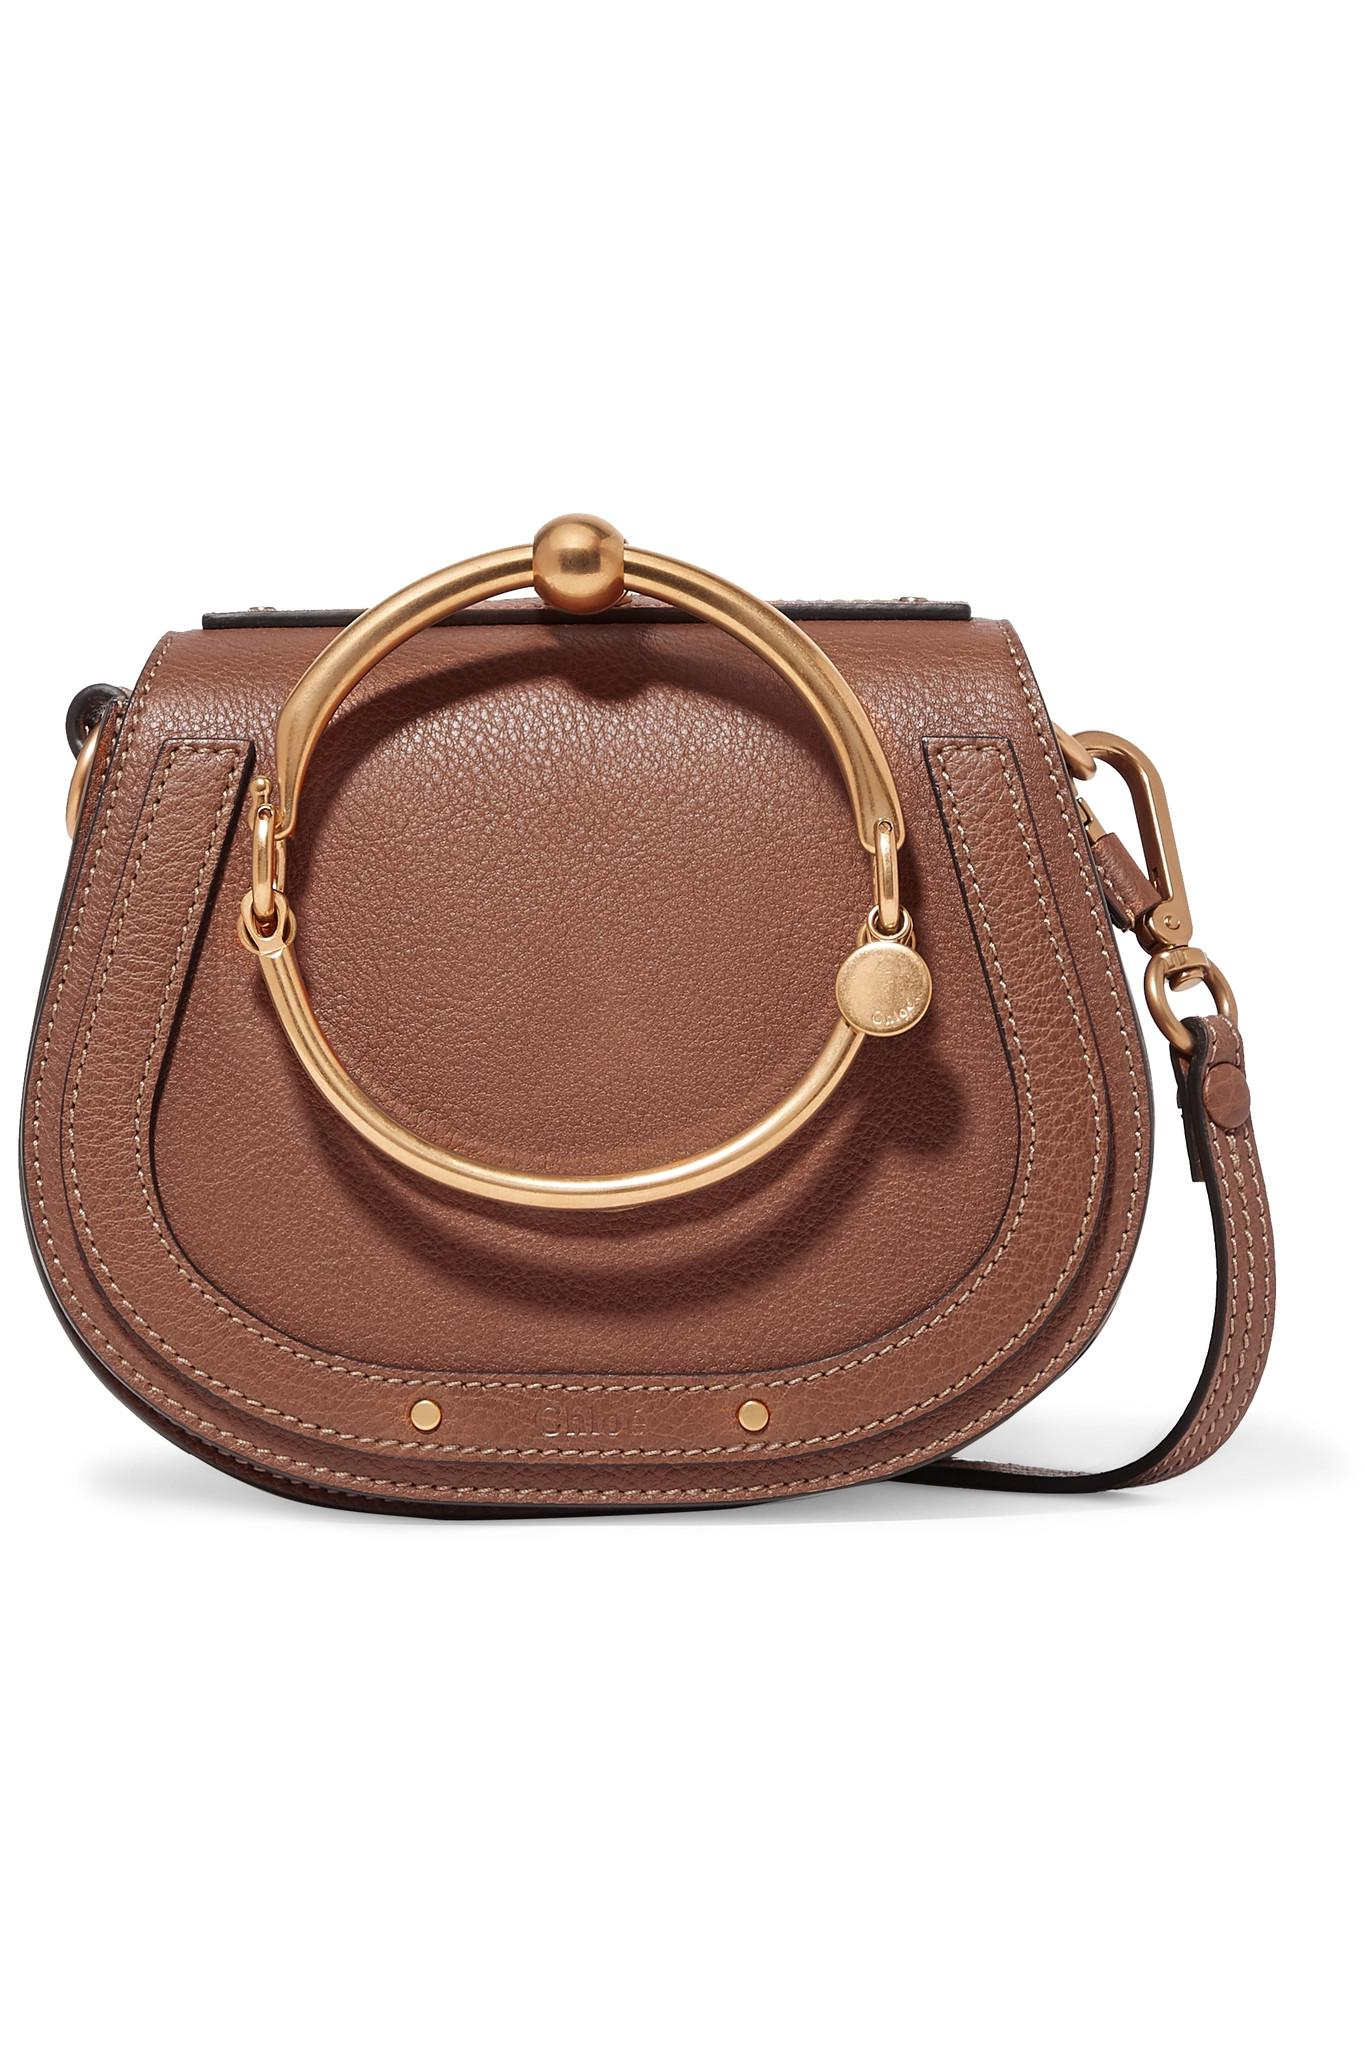 9bf6895d08 Chloé. Women s Brown Nile Bracelet Small Textured-leather And Suede  Shoulder Bag